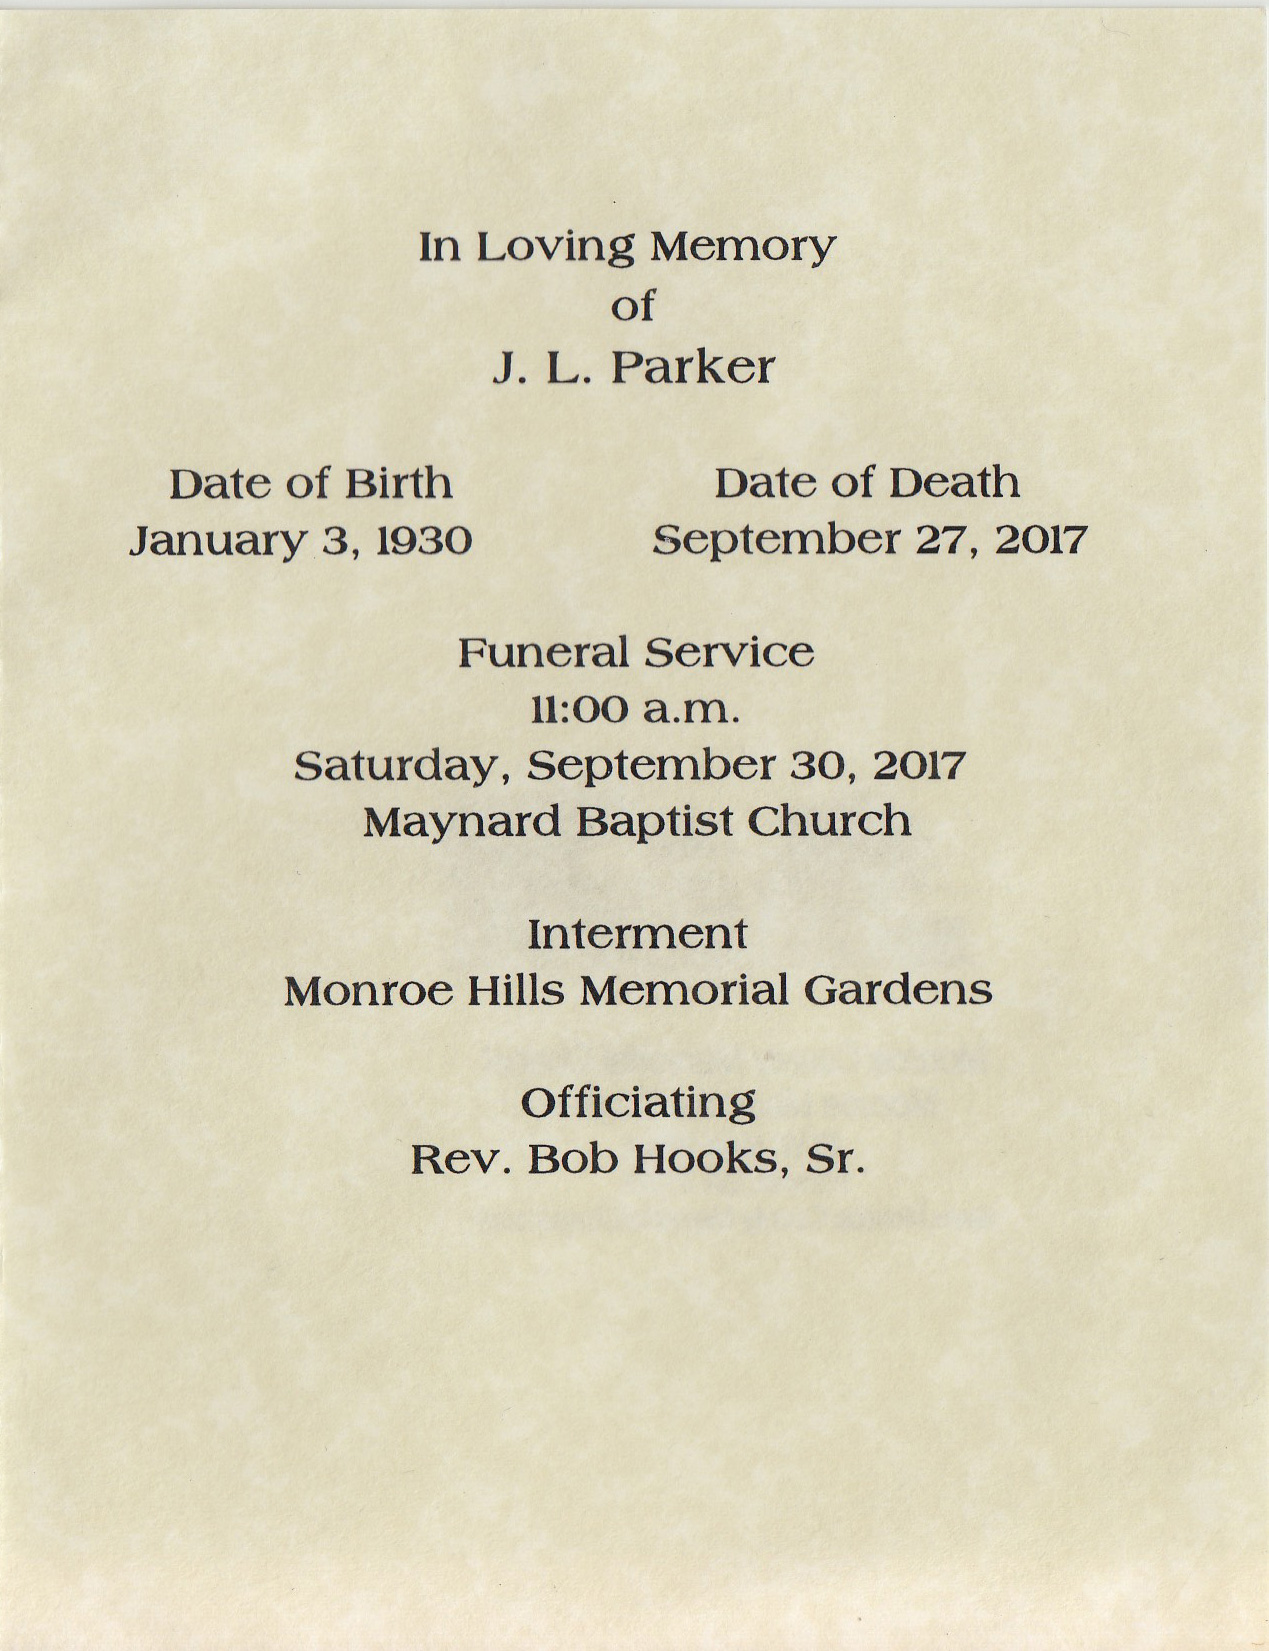 Inside page from the program from JL Parker's funeral